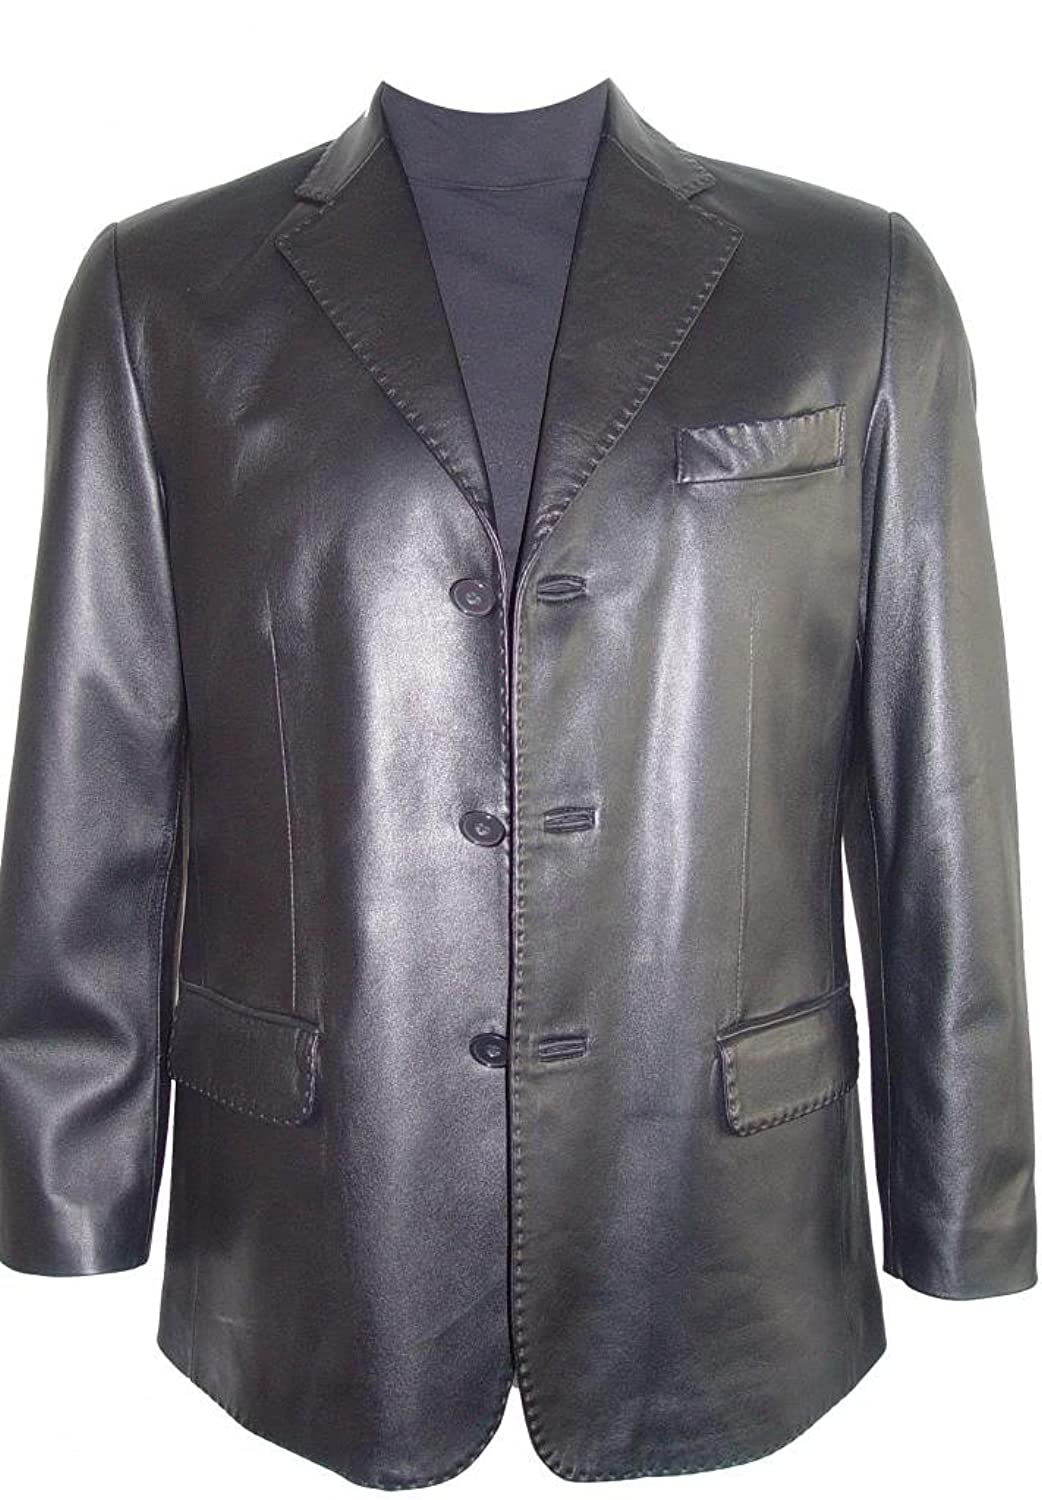 Johnnyblue Herren 1021 Original- Three Taste Lederblazer